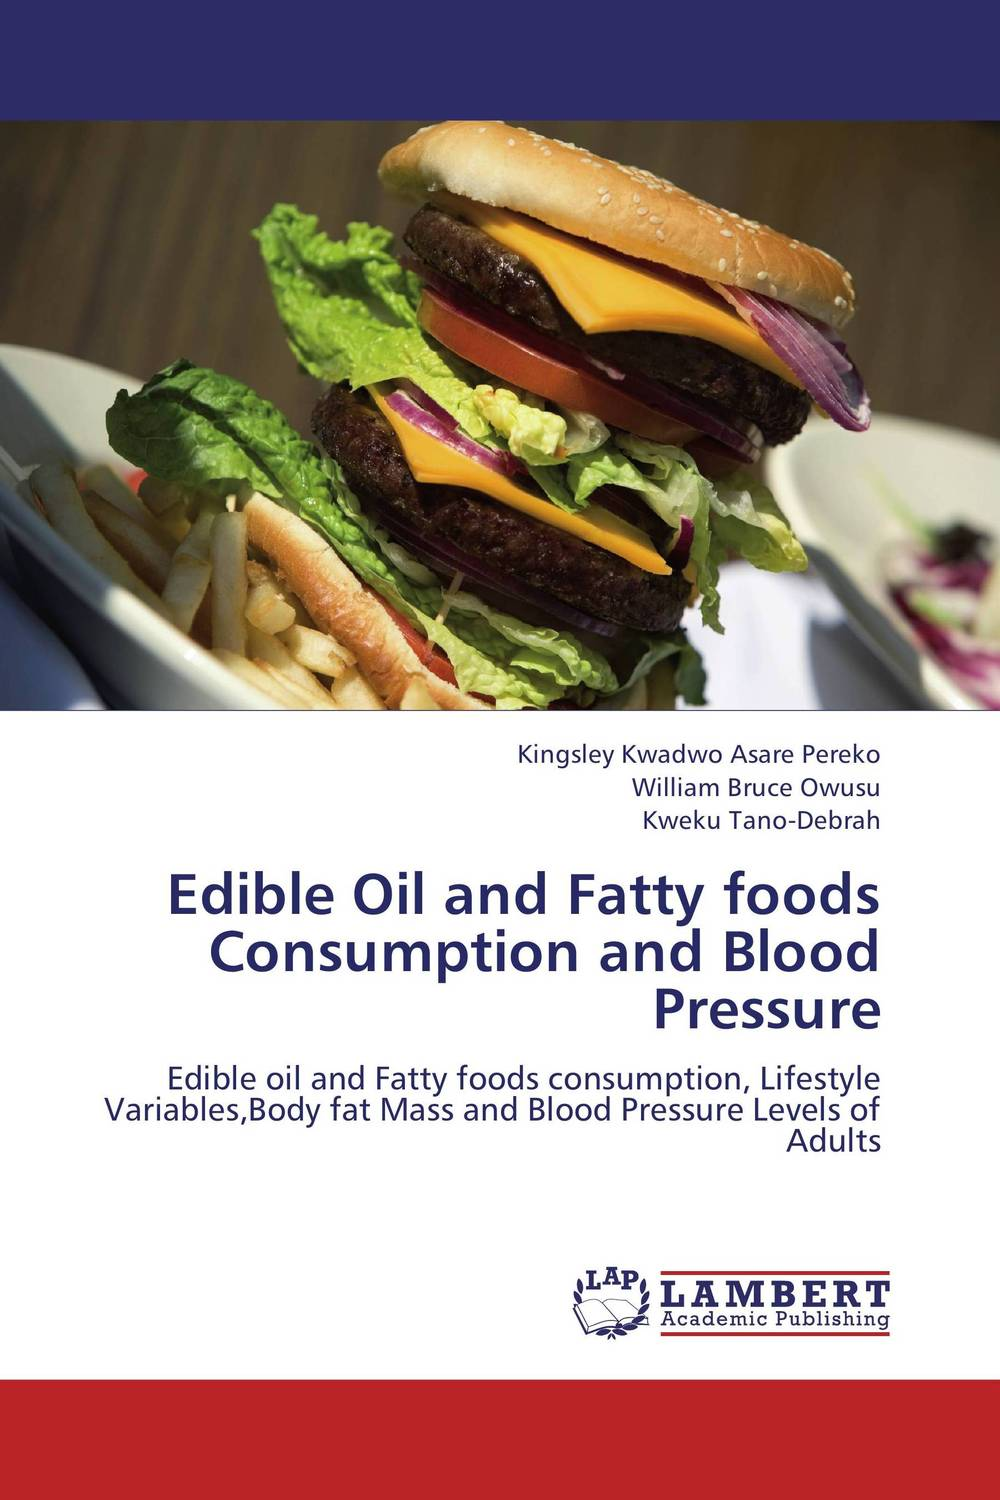 Edible Oil and Fatty foods Consumption and Blood Pressure factors associated with bone health in young adults